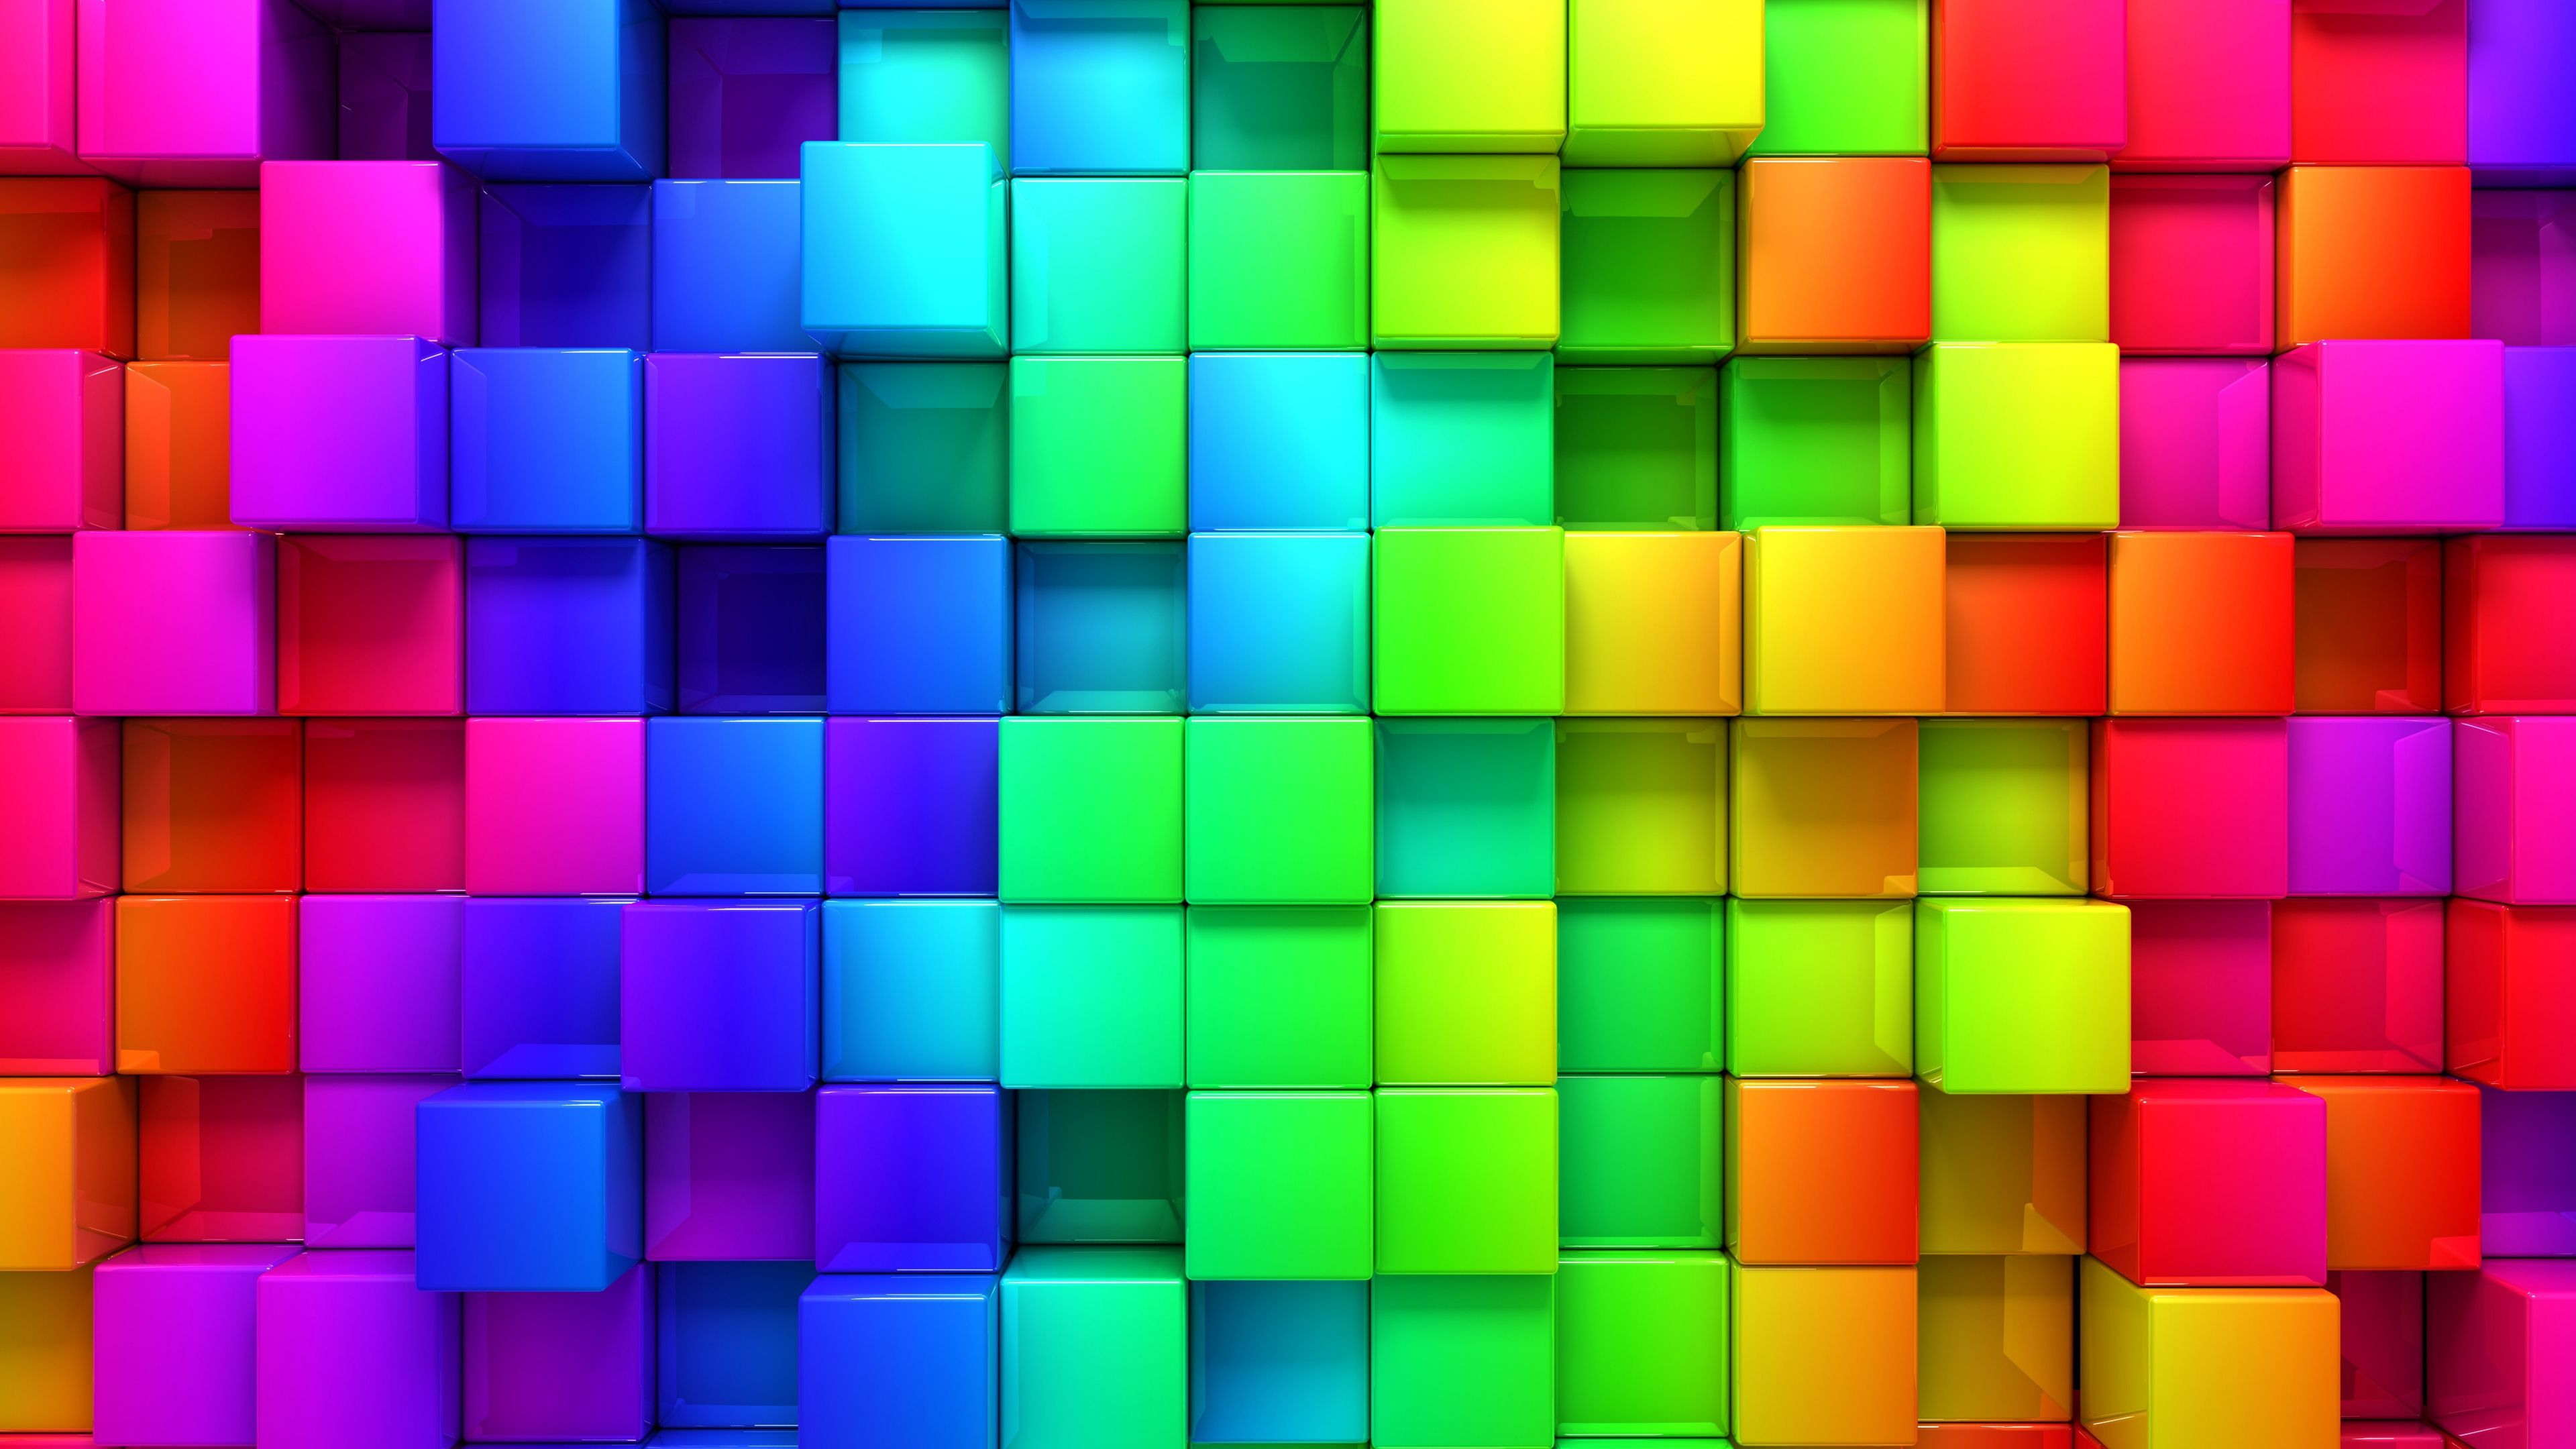 3840x2160 Wallpaper blocks, rainbow, 3d graphics